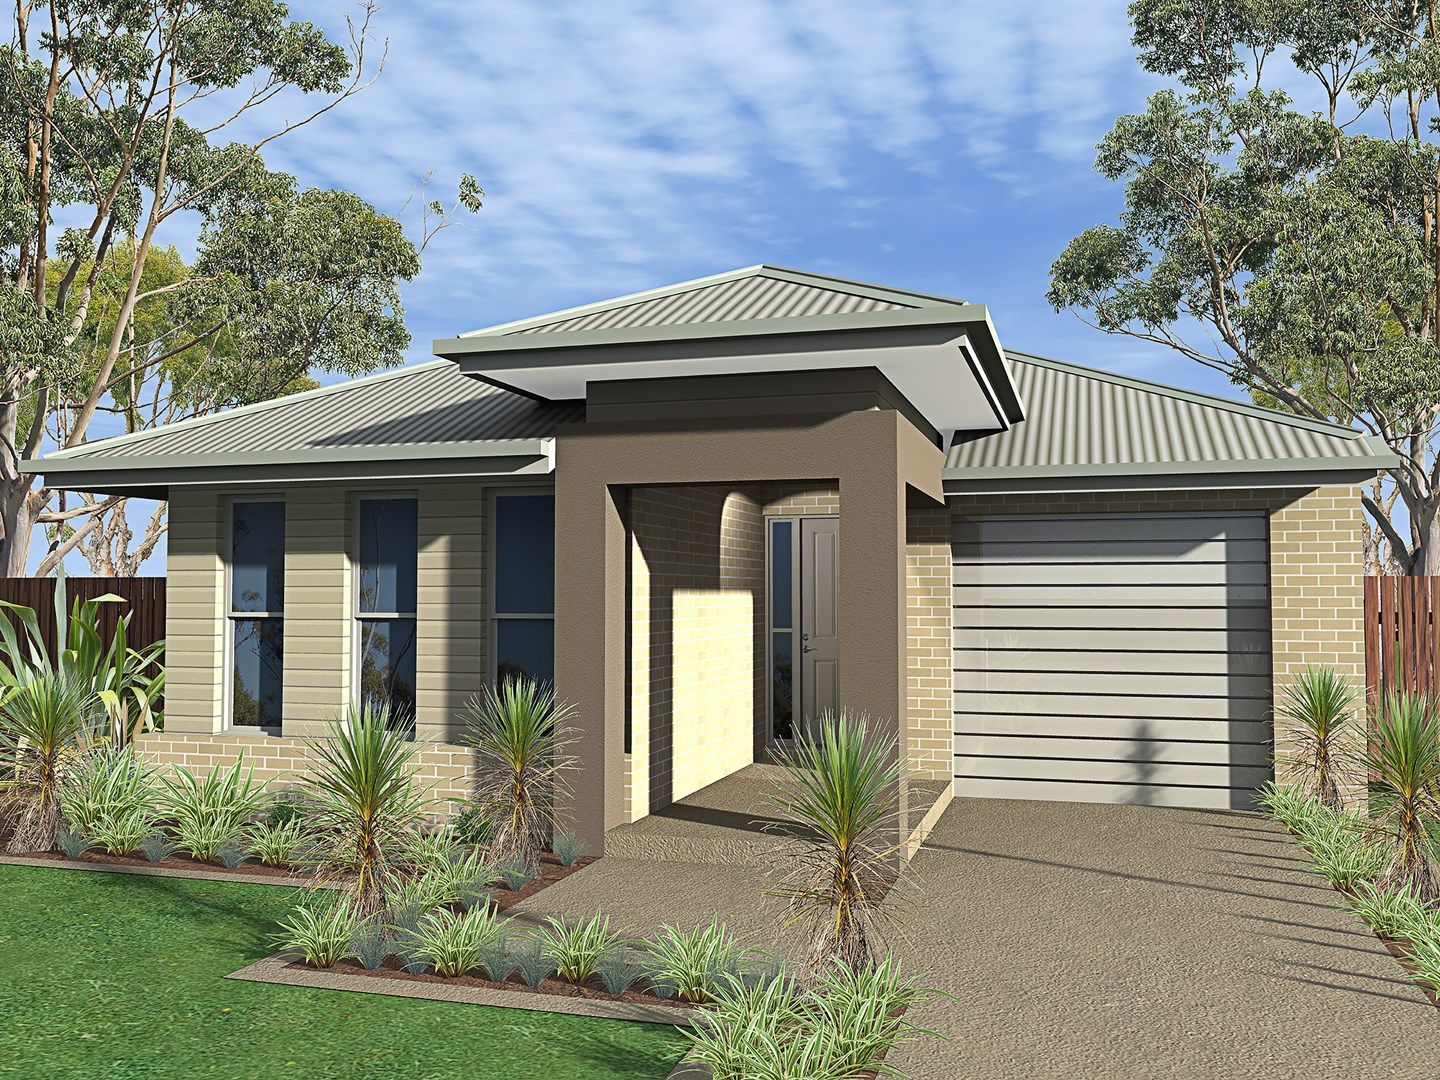 Lot 833 Wisteria Street (new road), Ellen Grove QLD 4078, Image 1